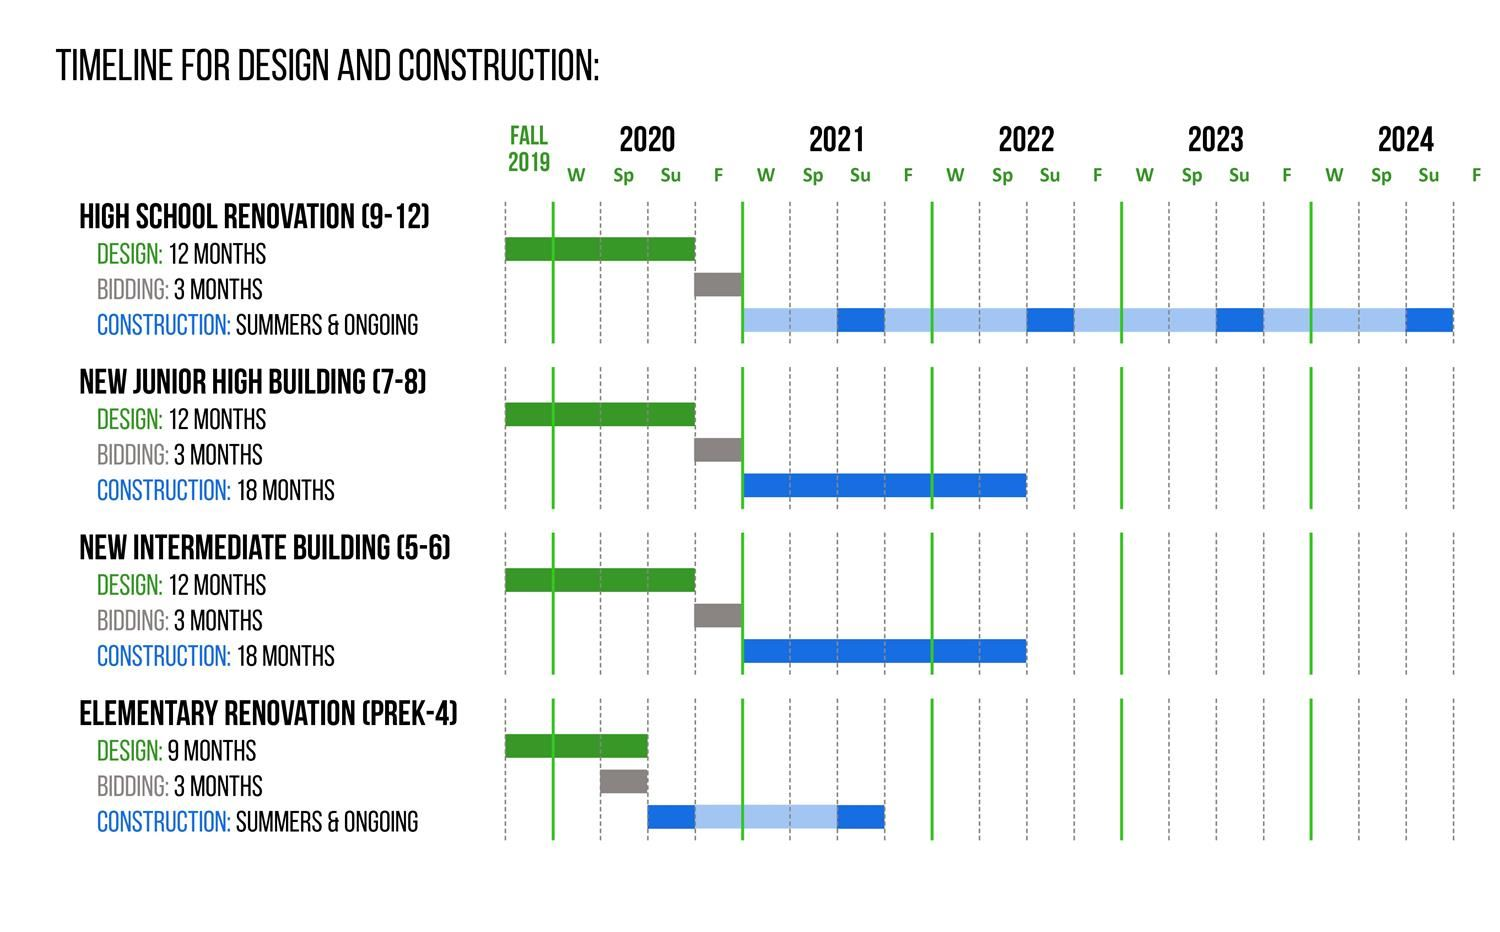 Timeline for Construction and Design